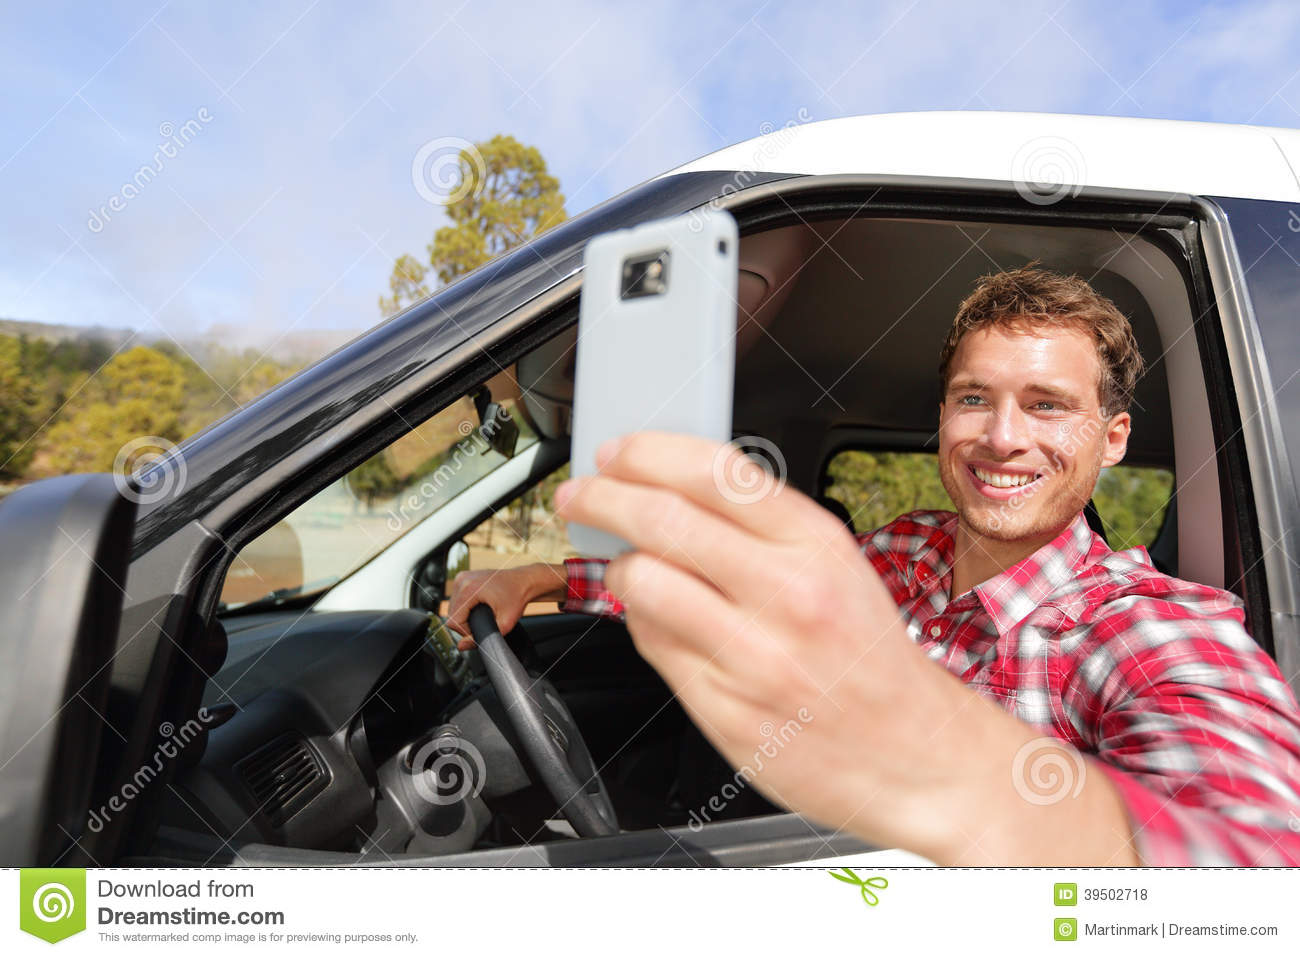 Driver taking photo with camera smartphone driving